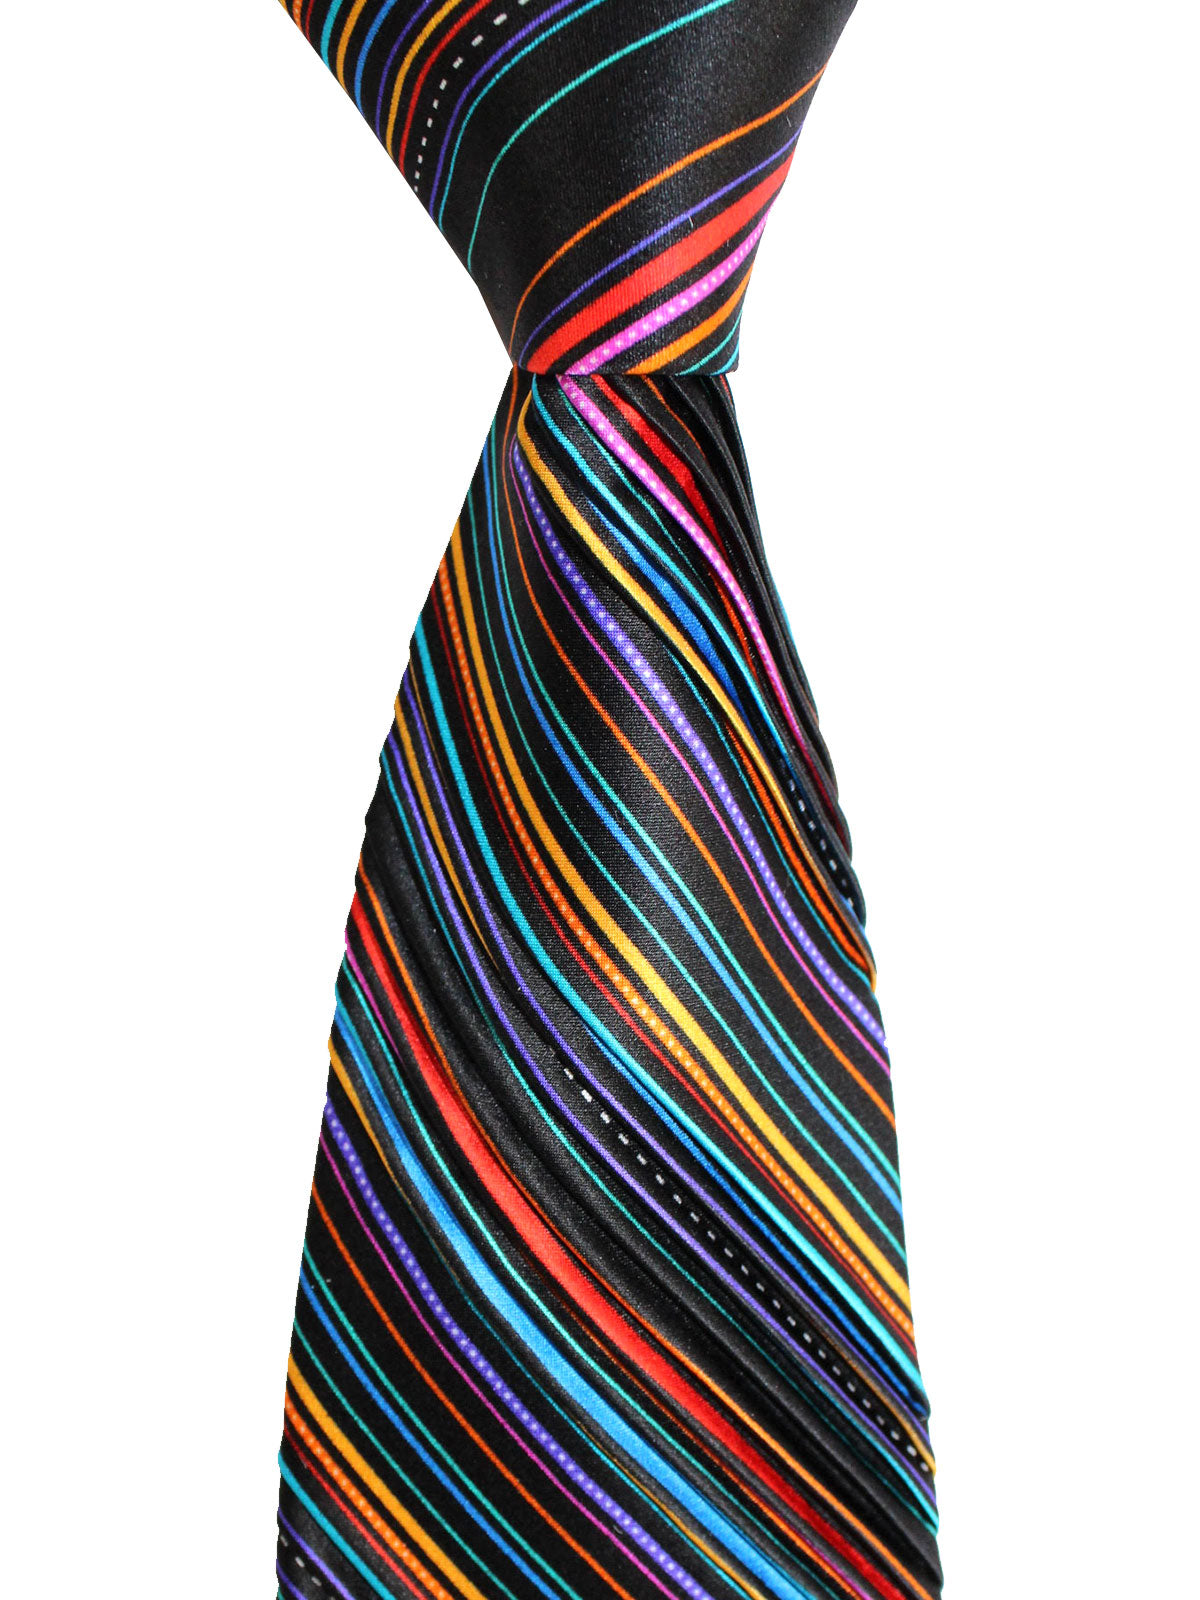 Vitaliano Pancaldi PLEATED SILK Tie Black Multicolored Stripes